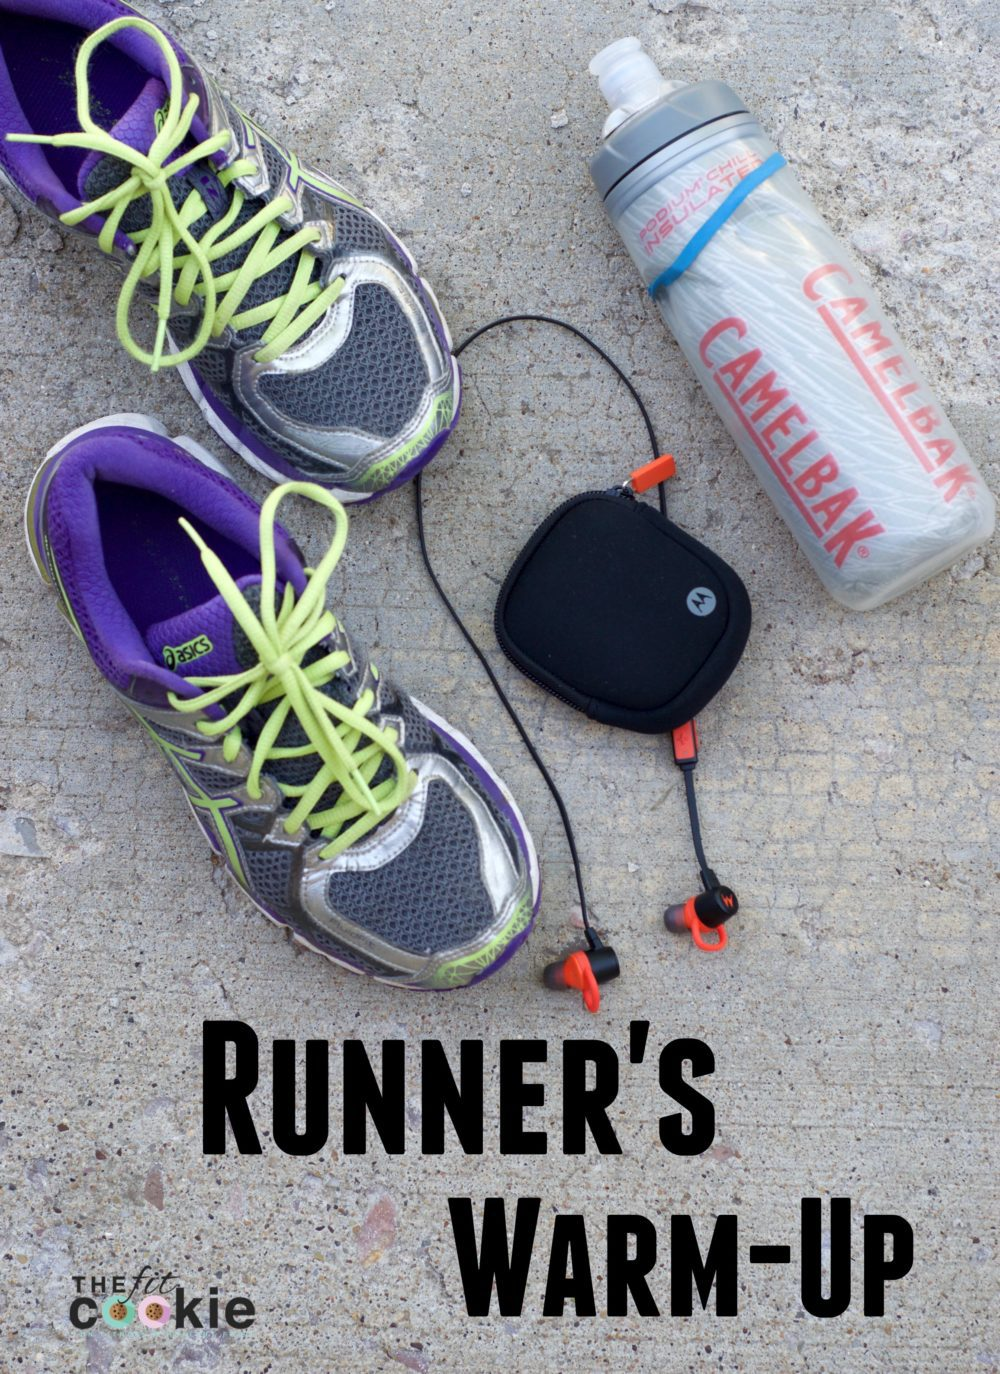 Get ready for your workout with this Runner's Warm-Up and VerveLoop+ - @thefitcookie #ad #VerveLife #YourMove @avervelife #fitness